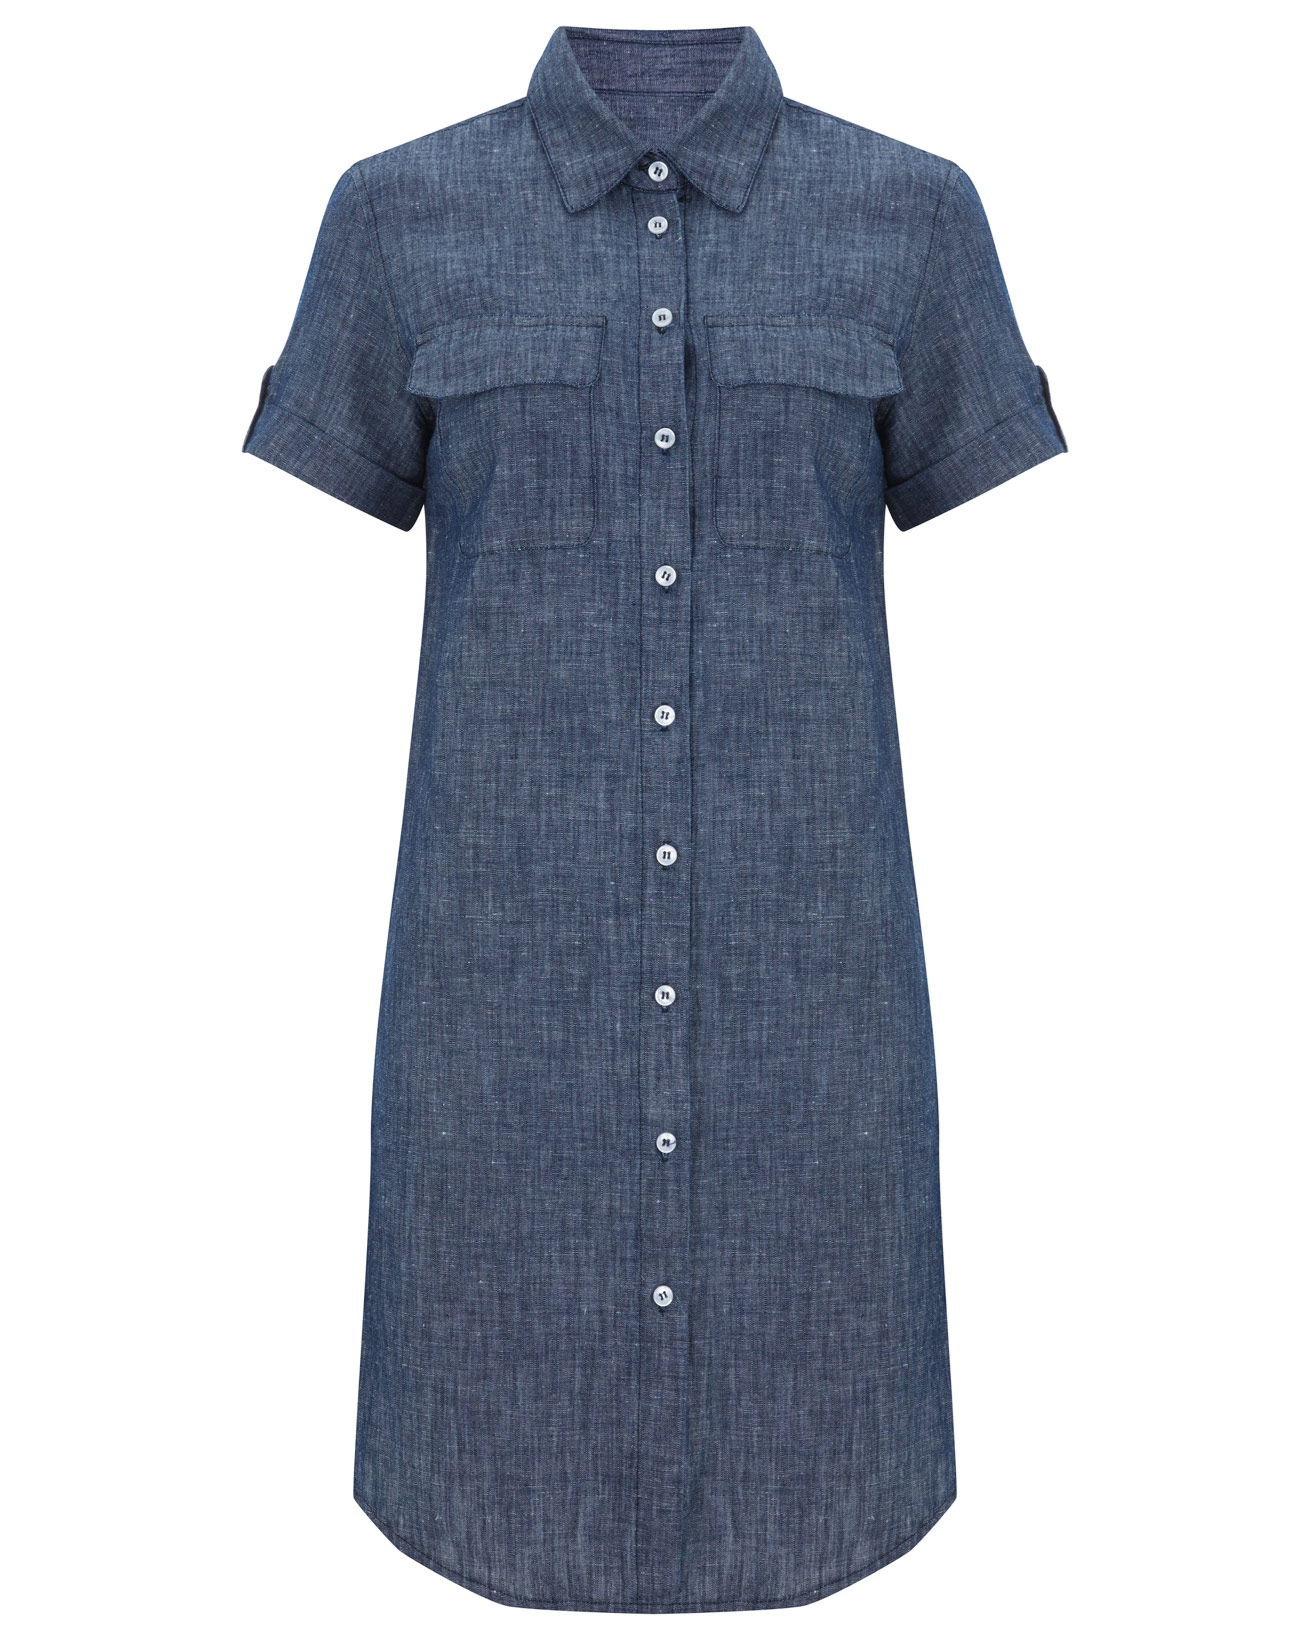 7346-chambray dress-front-ss18.jpg